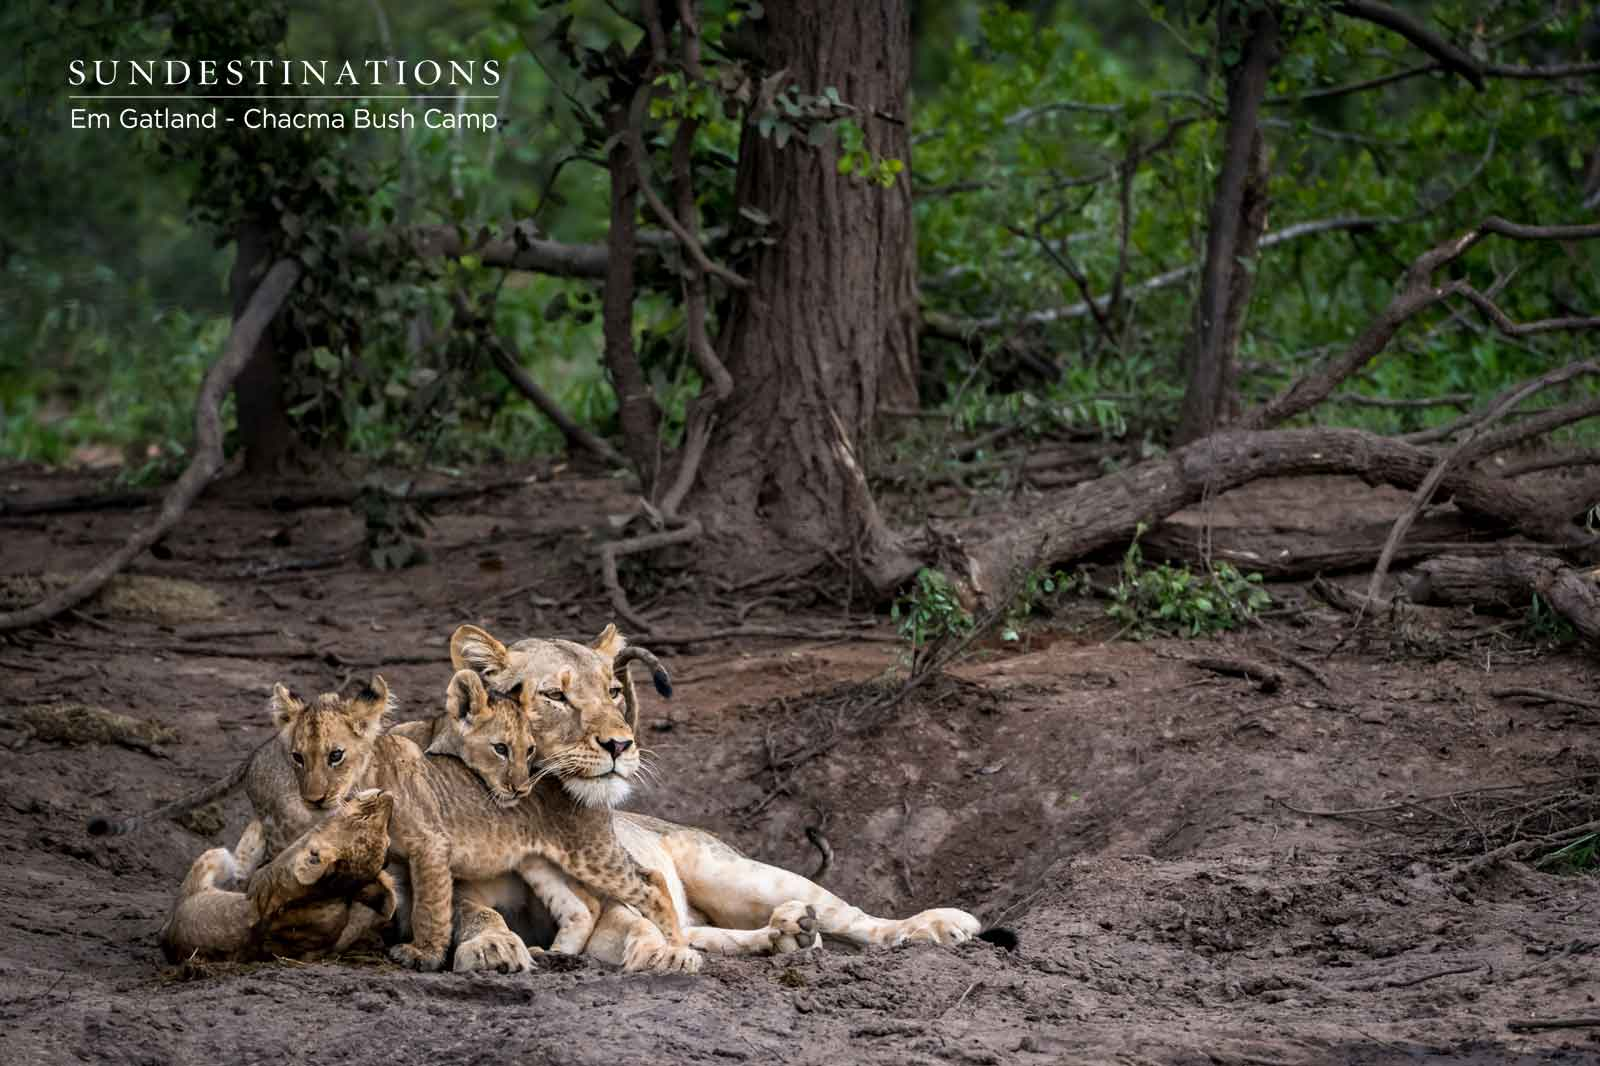 Chacma Lions